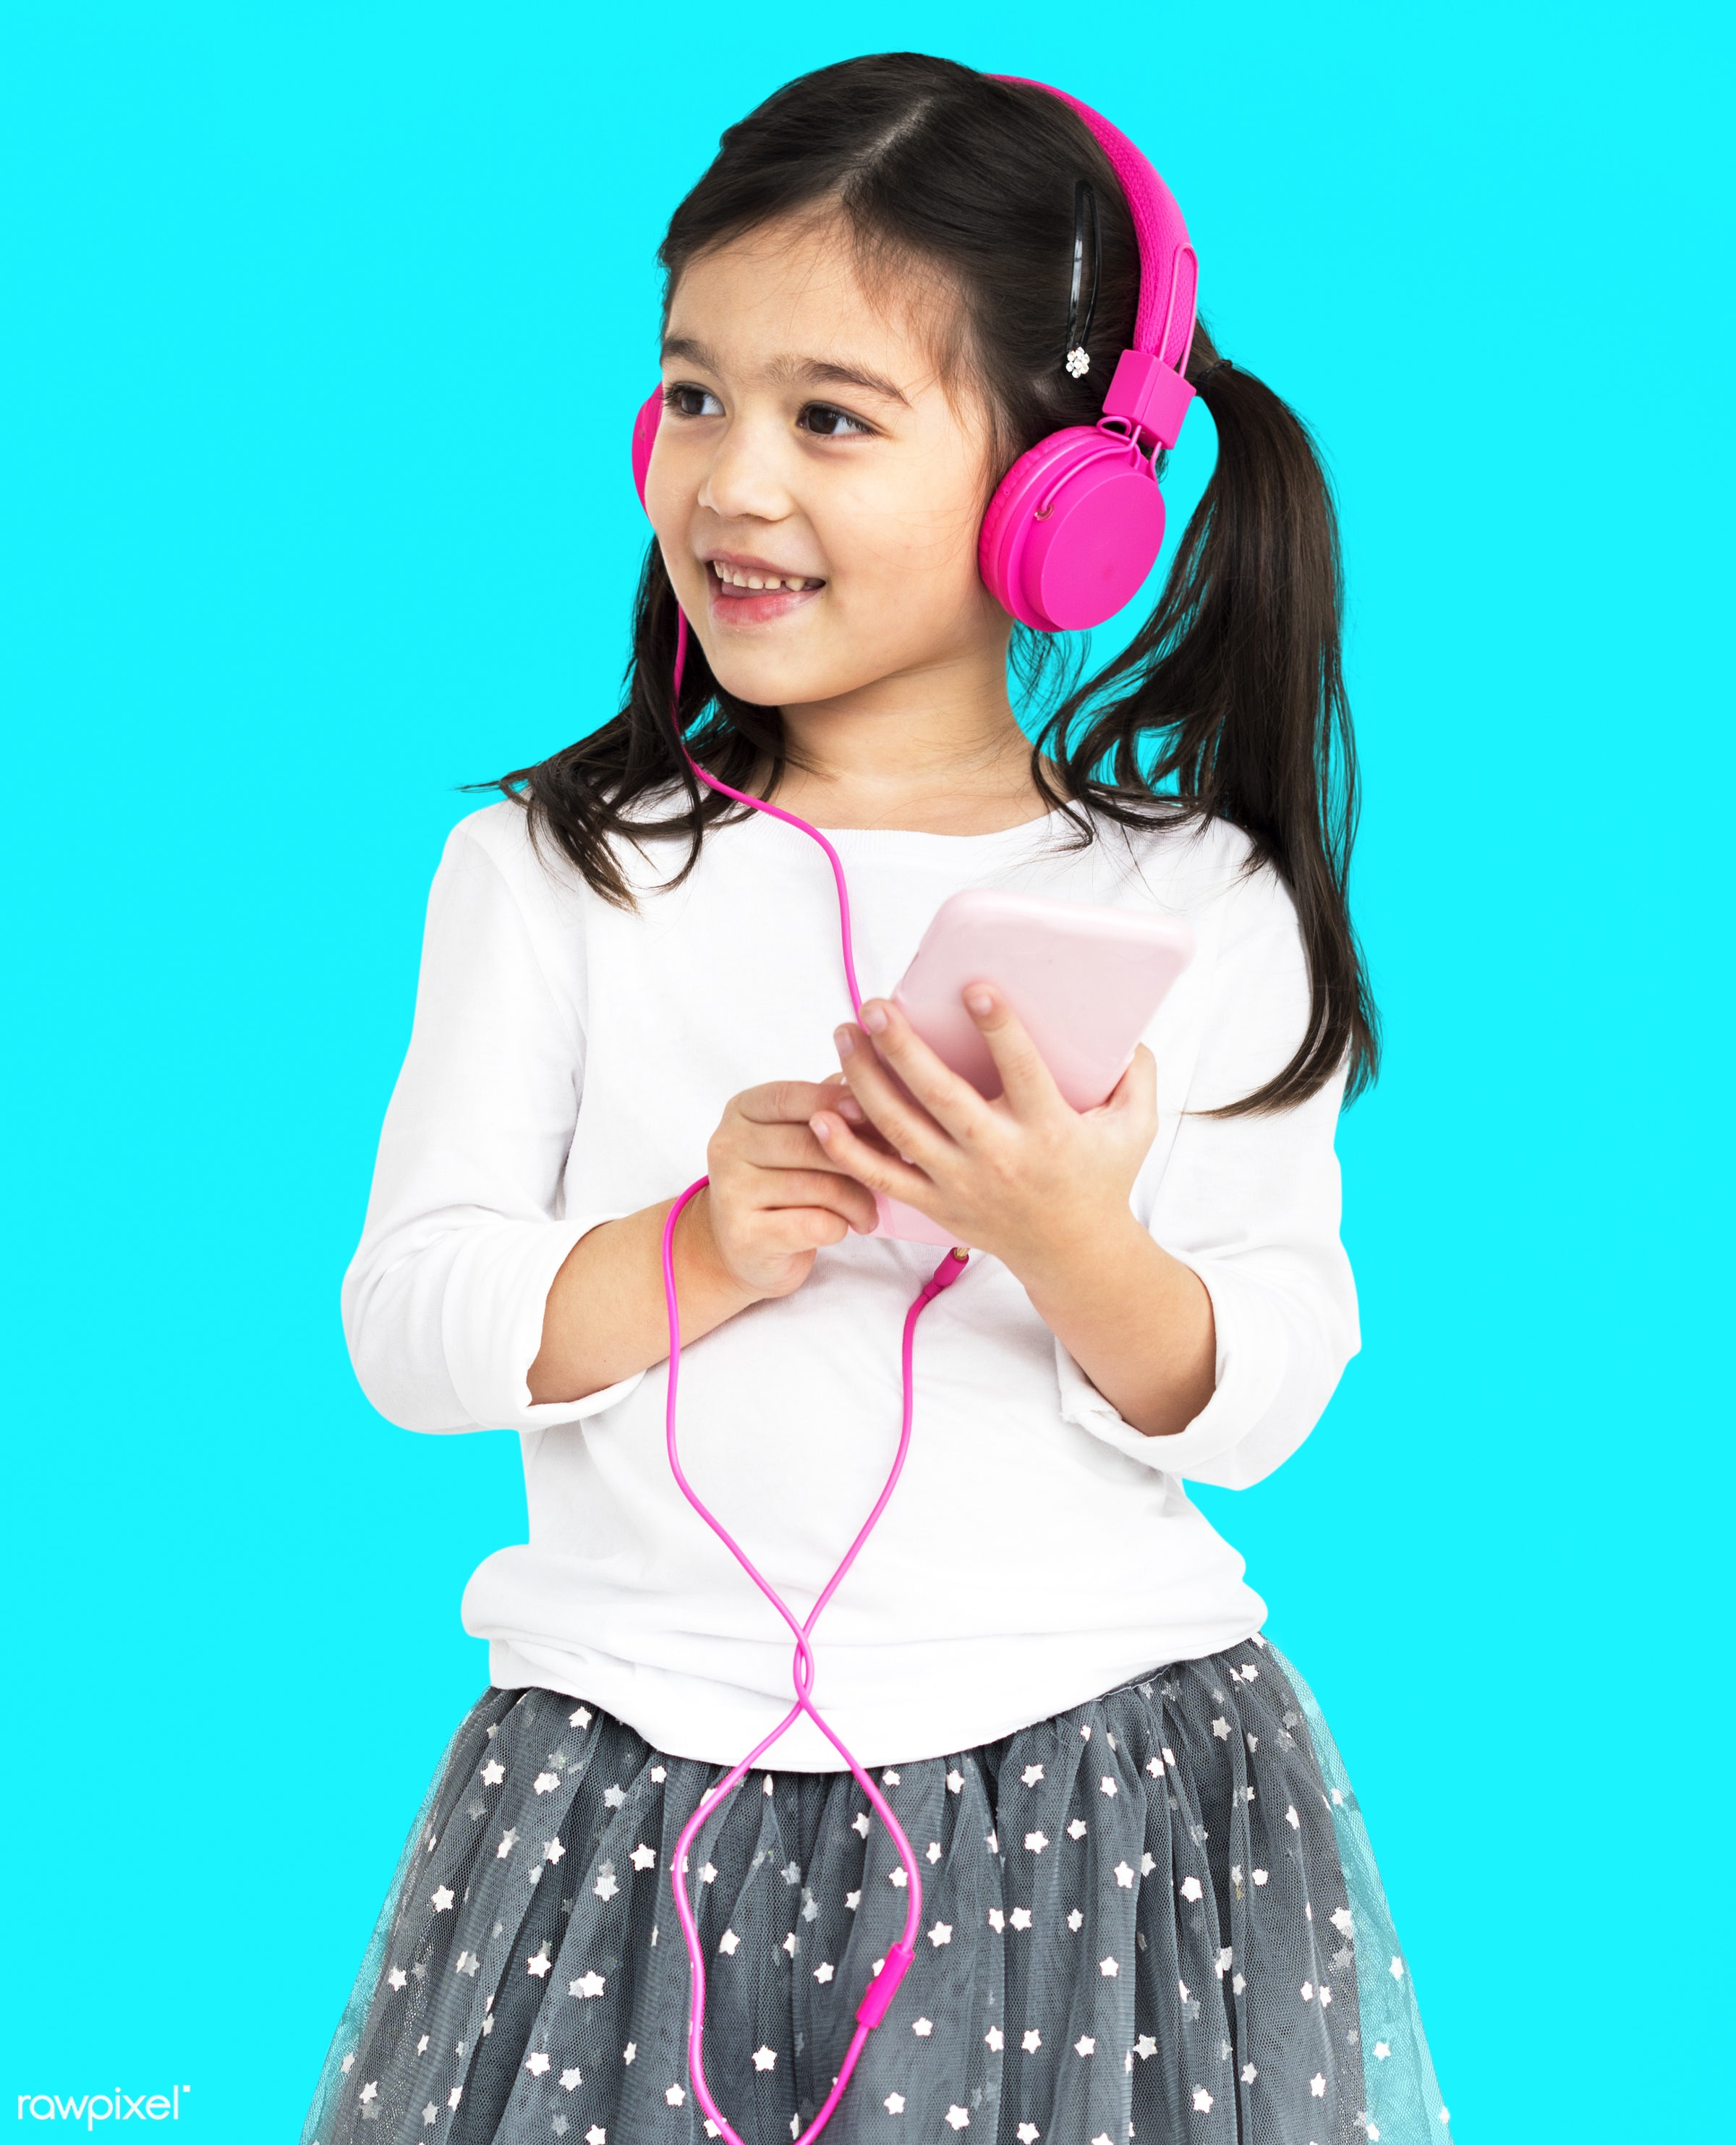 studio, expression, using, person, technology, little, recreation, people, kid, childhood, smart phone, cheerful, smiling,...